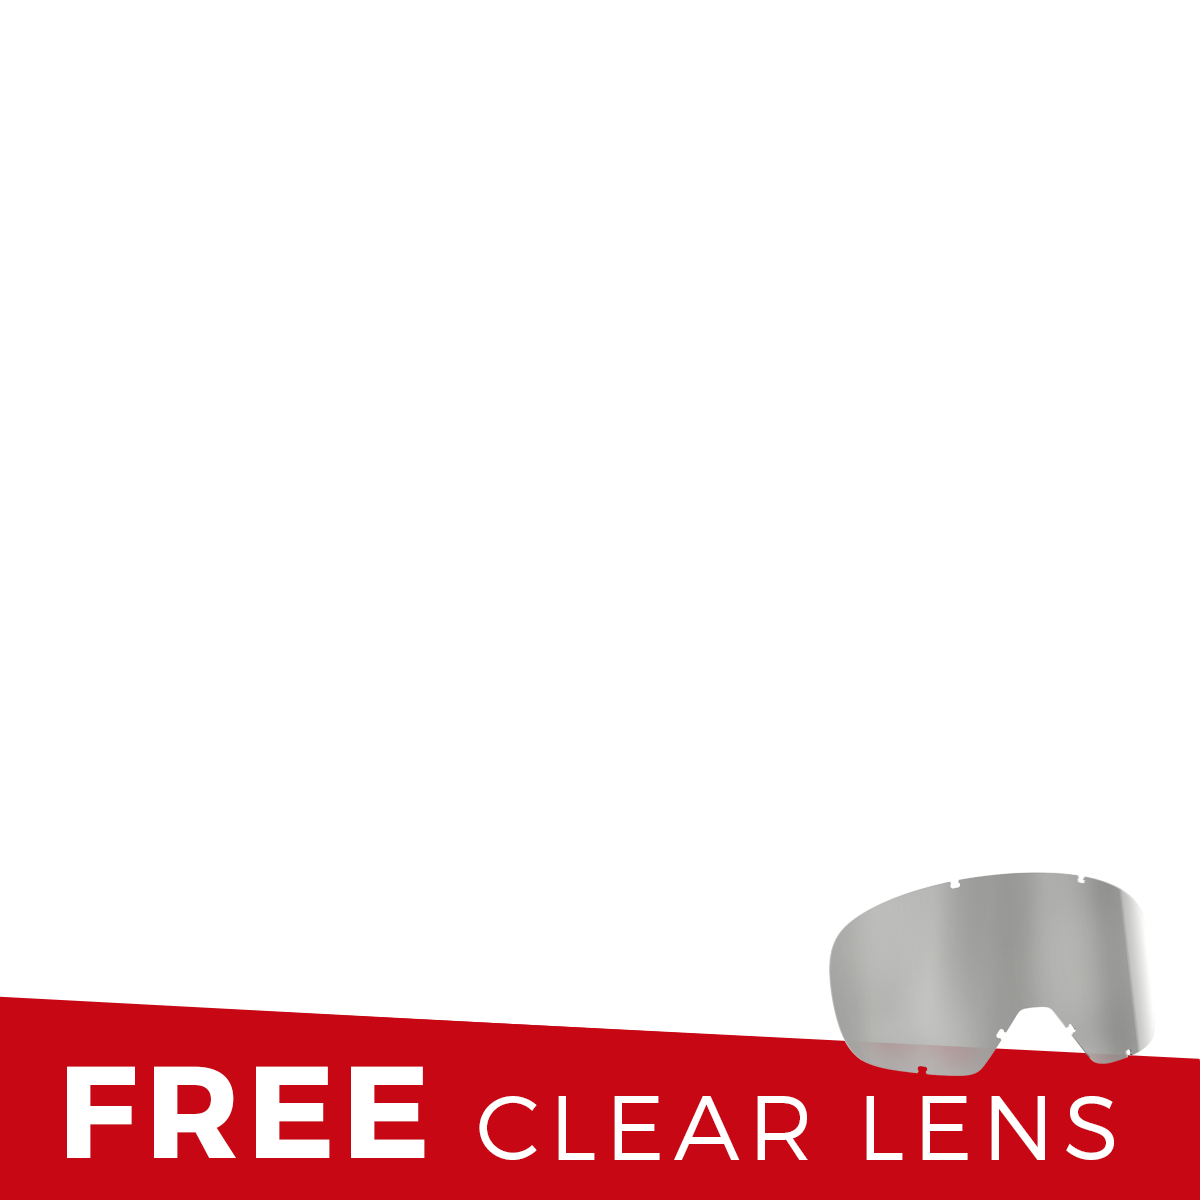 free-clear-lens